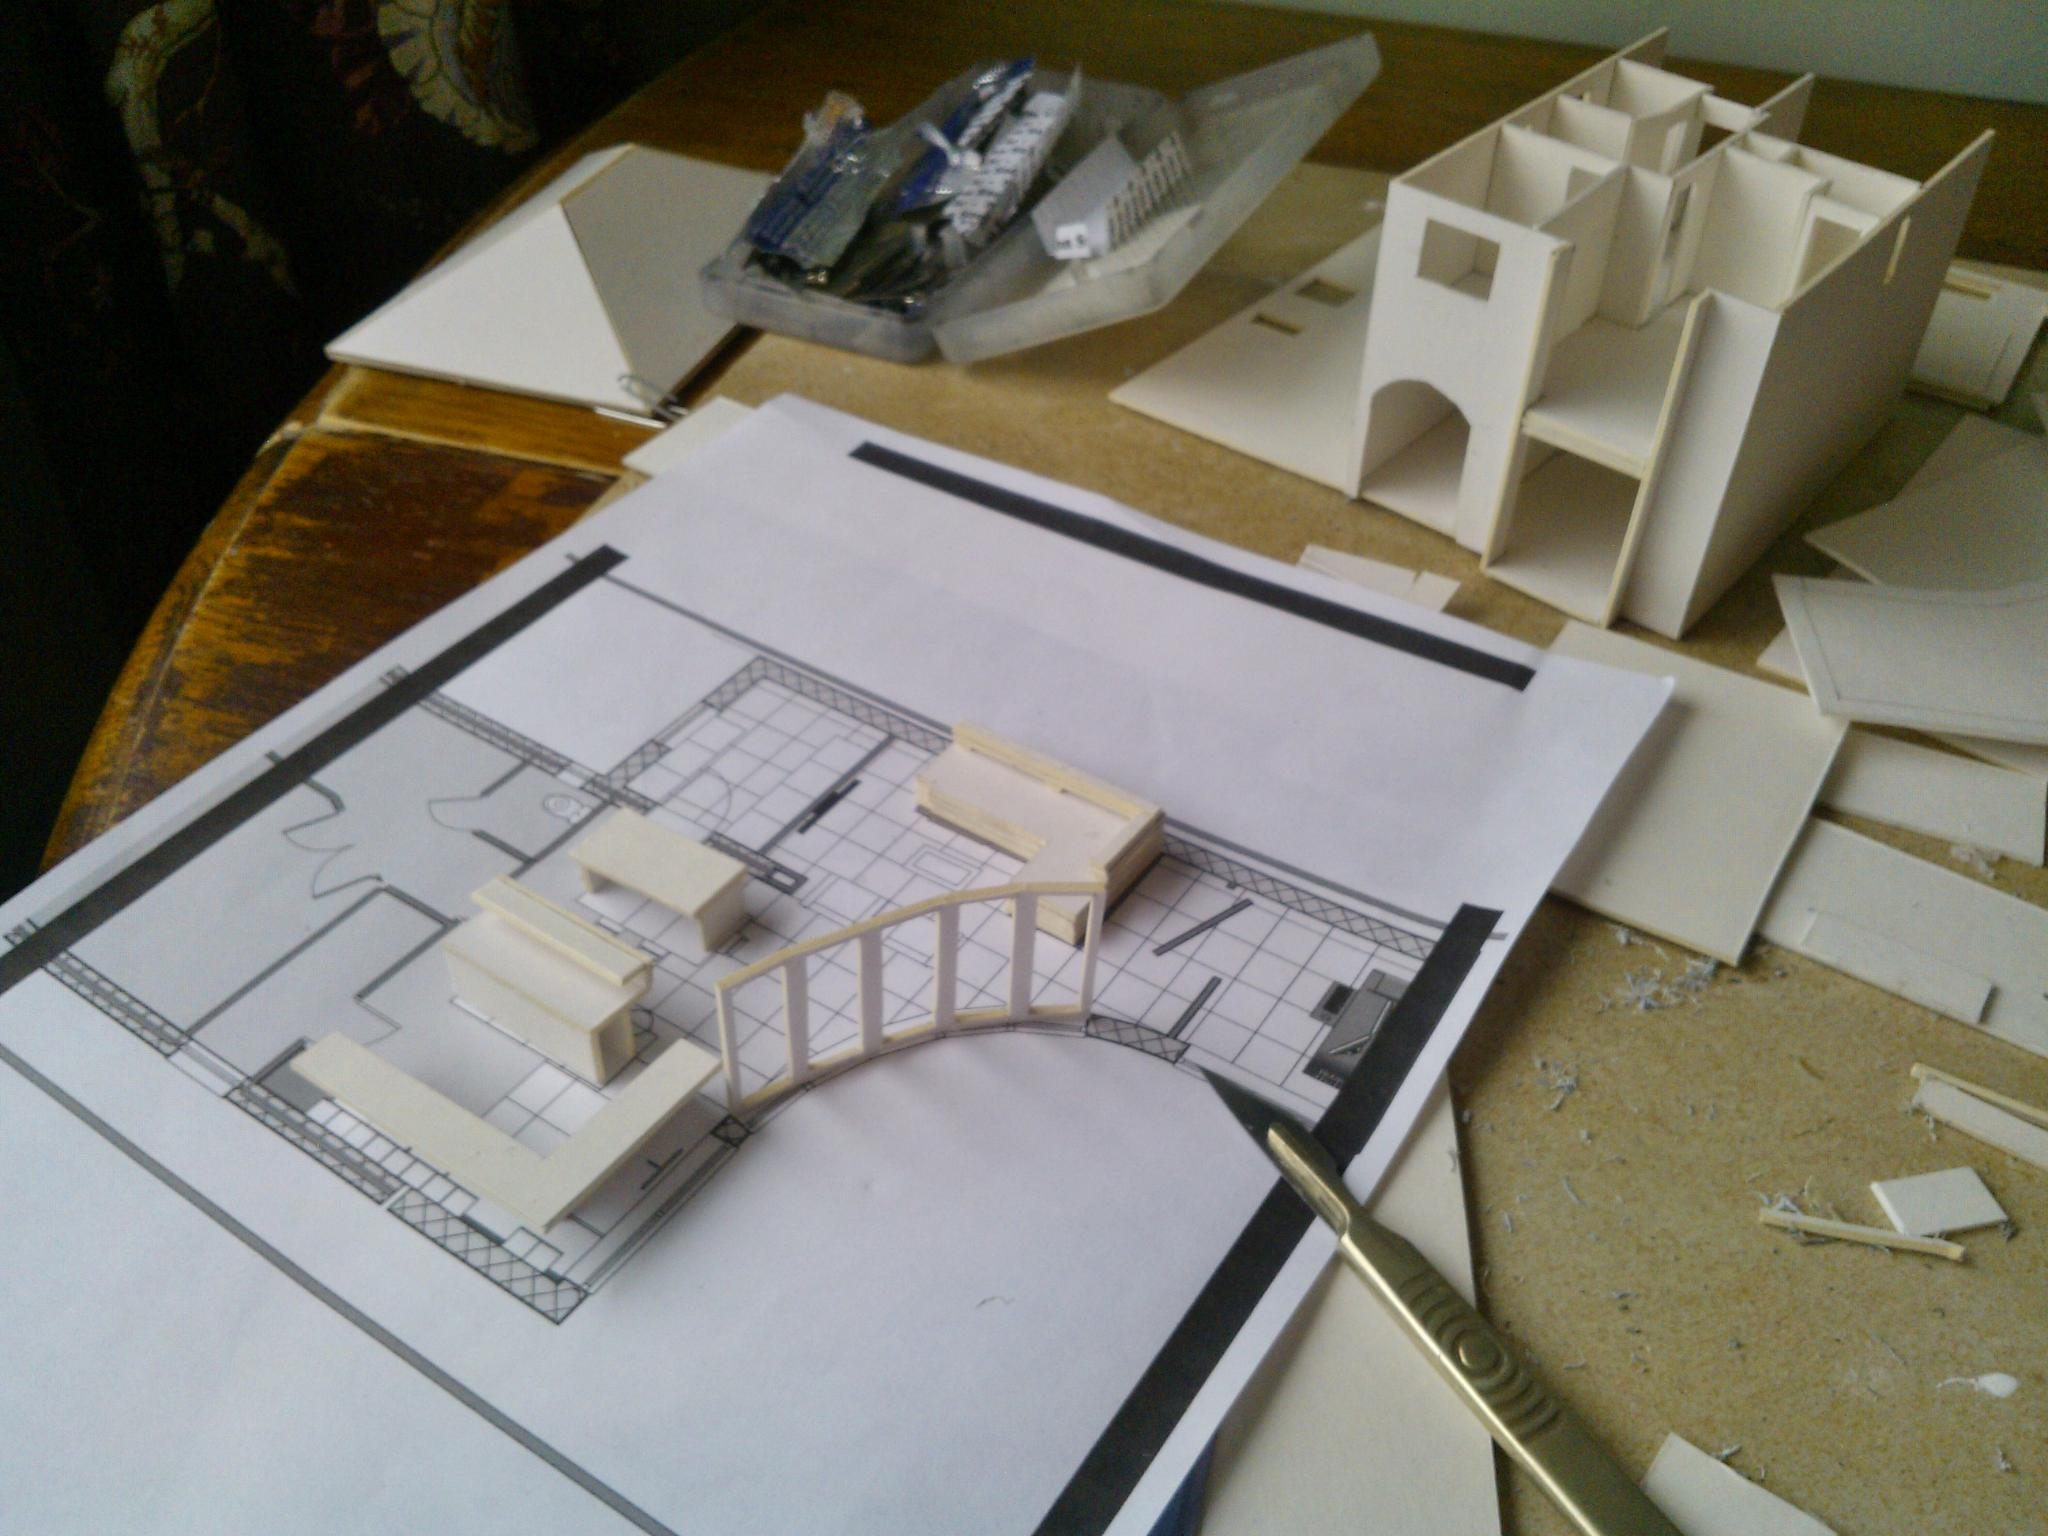 After months spent changing over to BIM, a white card model makes a refreshing change!